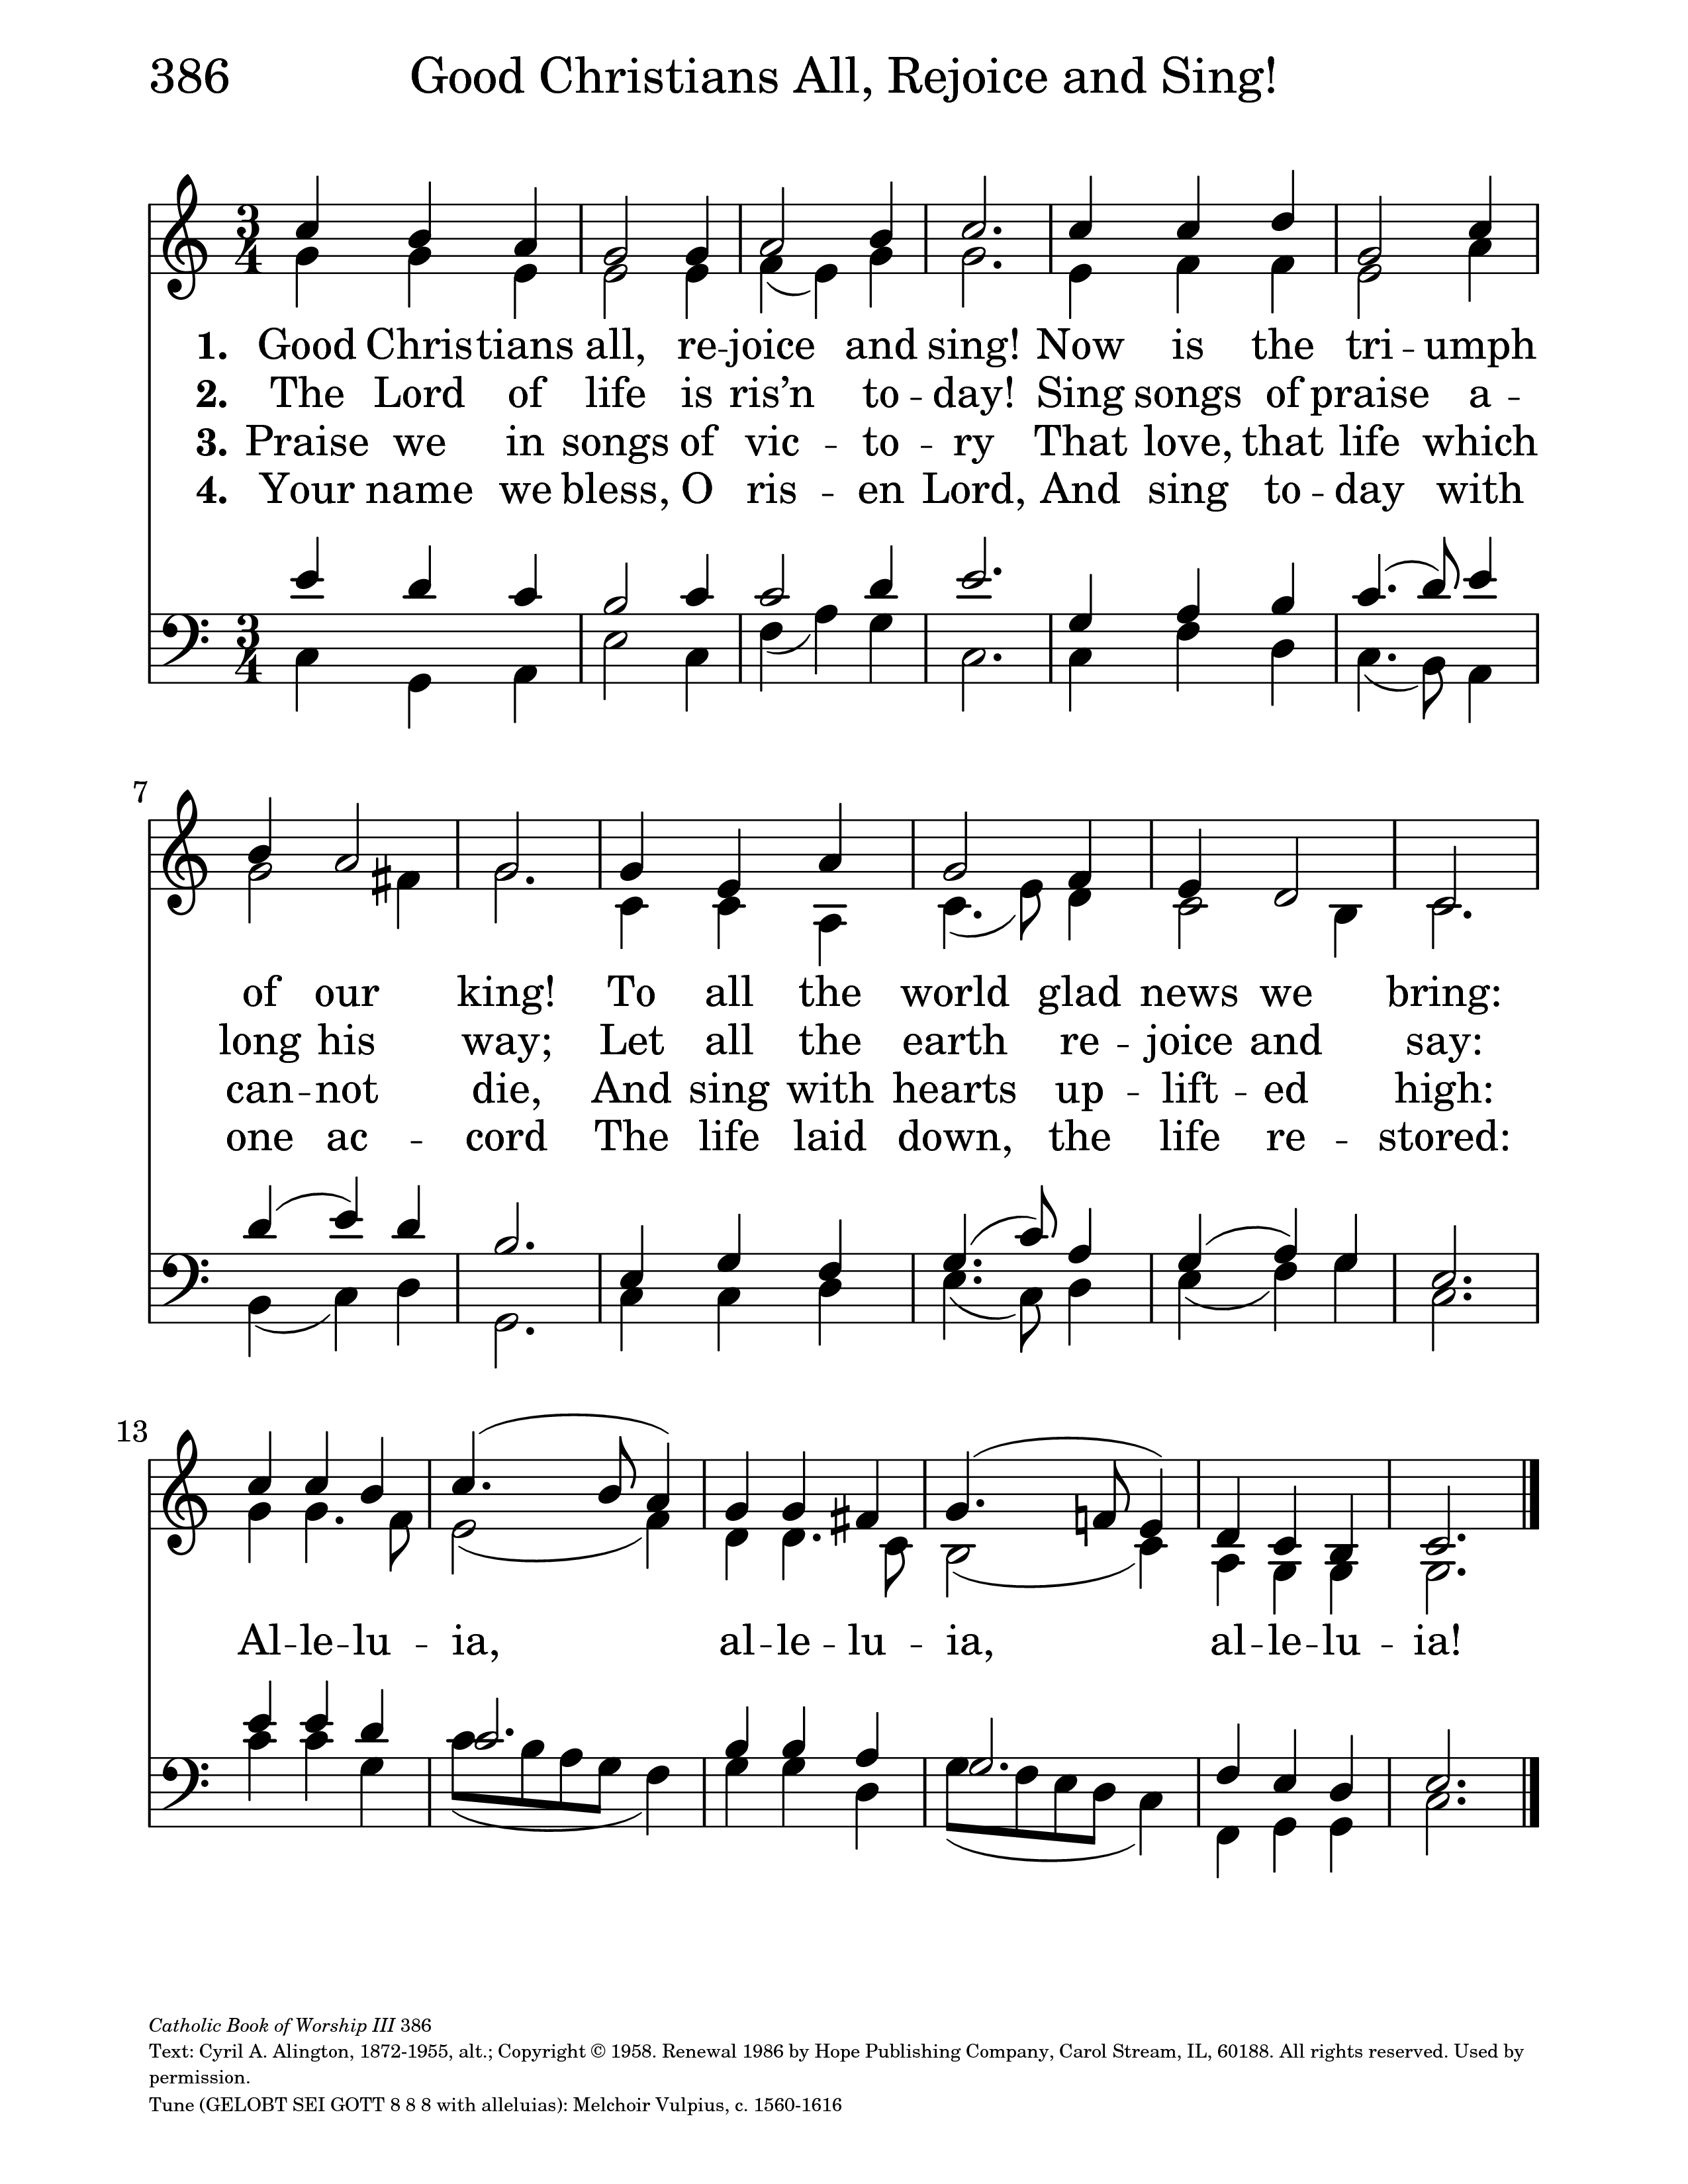 Good Christians All, Rejoice and Sing | Hymnary org